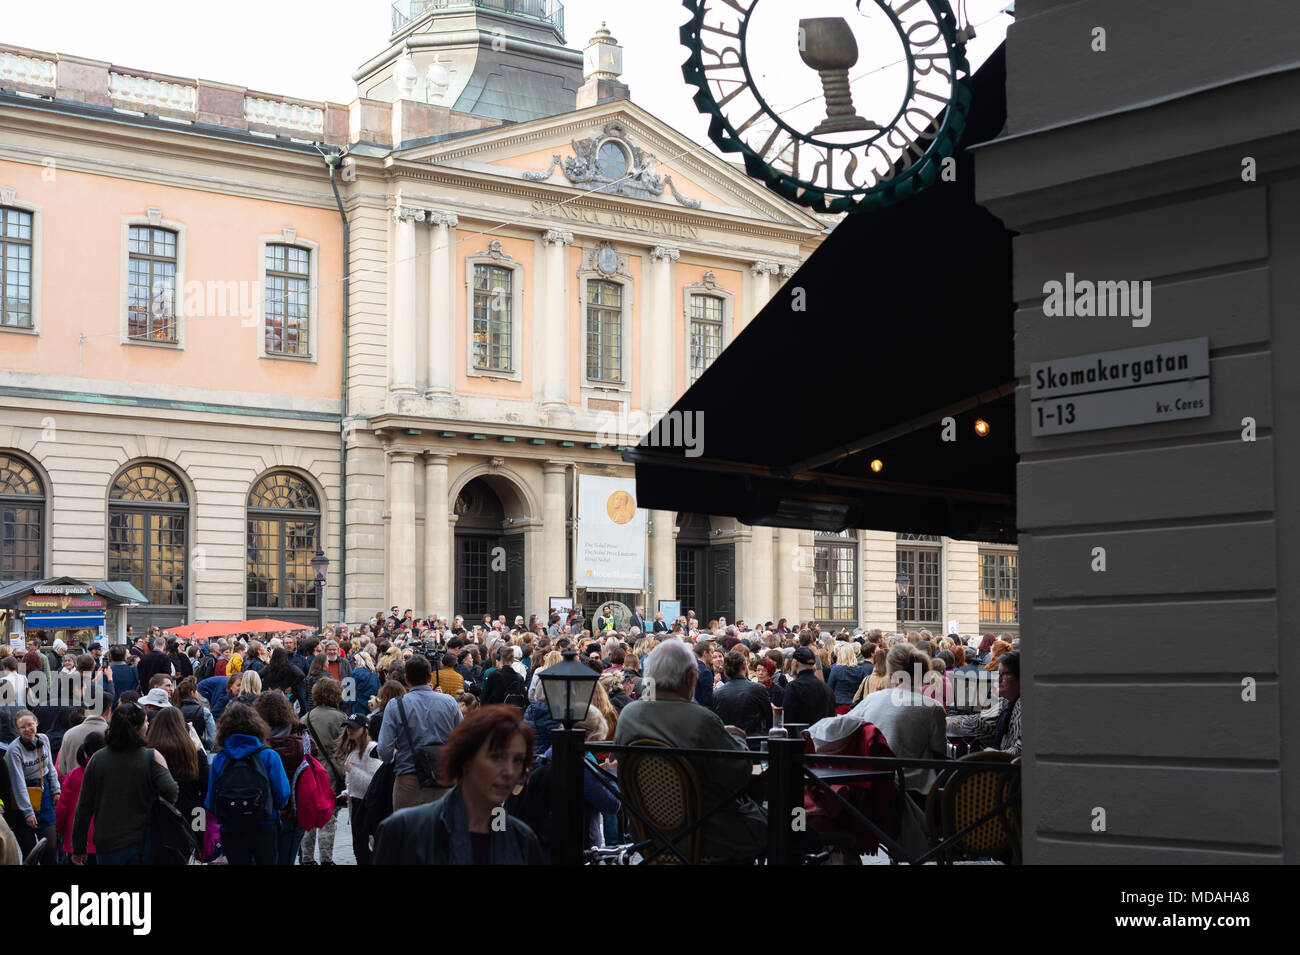 Stockholm, Sweden, 19th April, 2018. Crisis in the Swedish Academy.  Manifestation calling on the entire Swedish Academy to resign.Credit: Barbro Bergfeldt/Alamy Live News - Stock Image